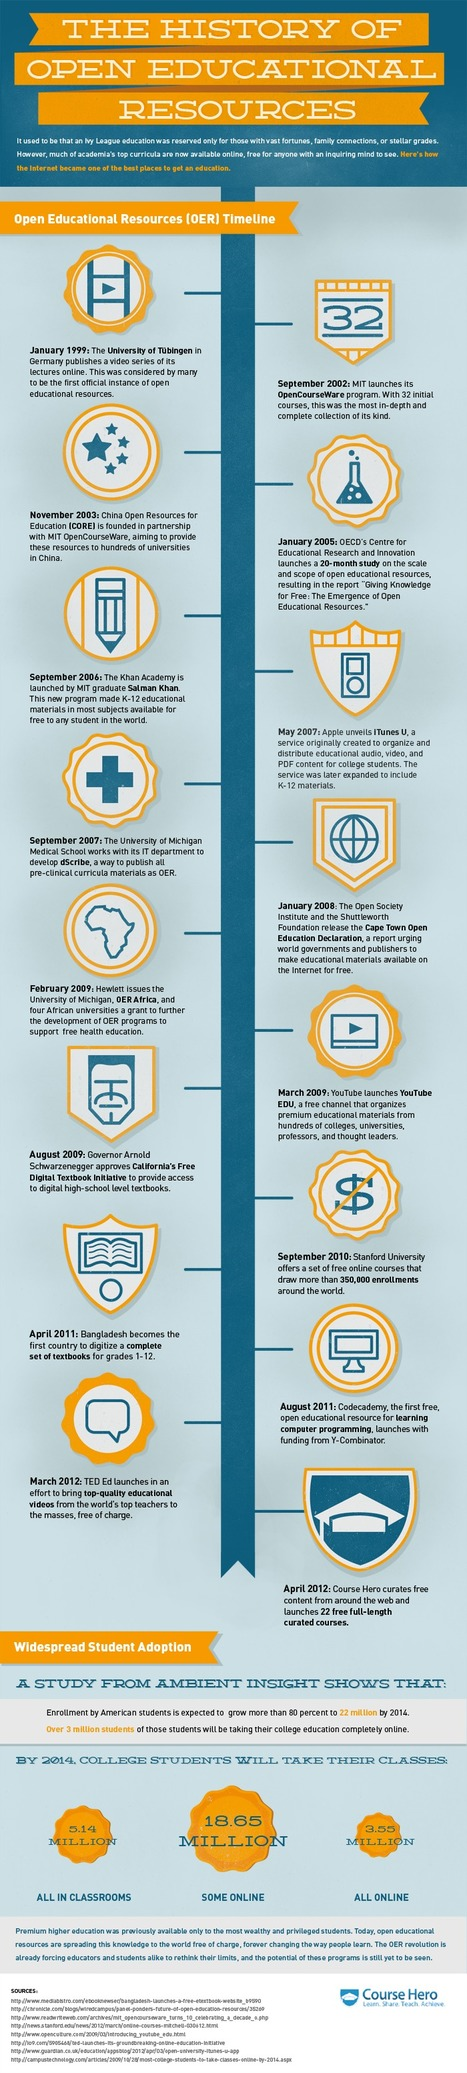 INFOGRAPHIC: A HISTORY OF OPEN EDUCATIONAL RESOURCES | Course Hero | E-Learning and Online Teaching | Scoop.it